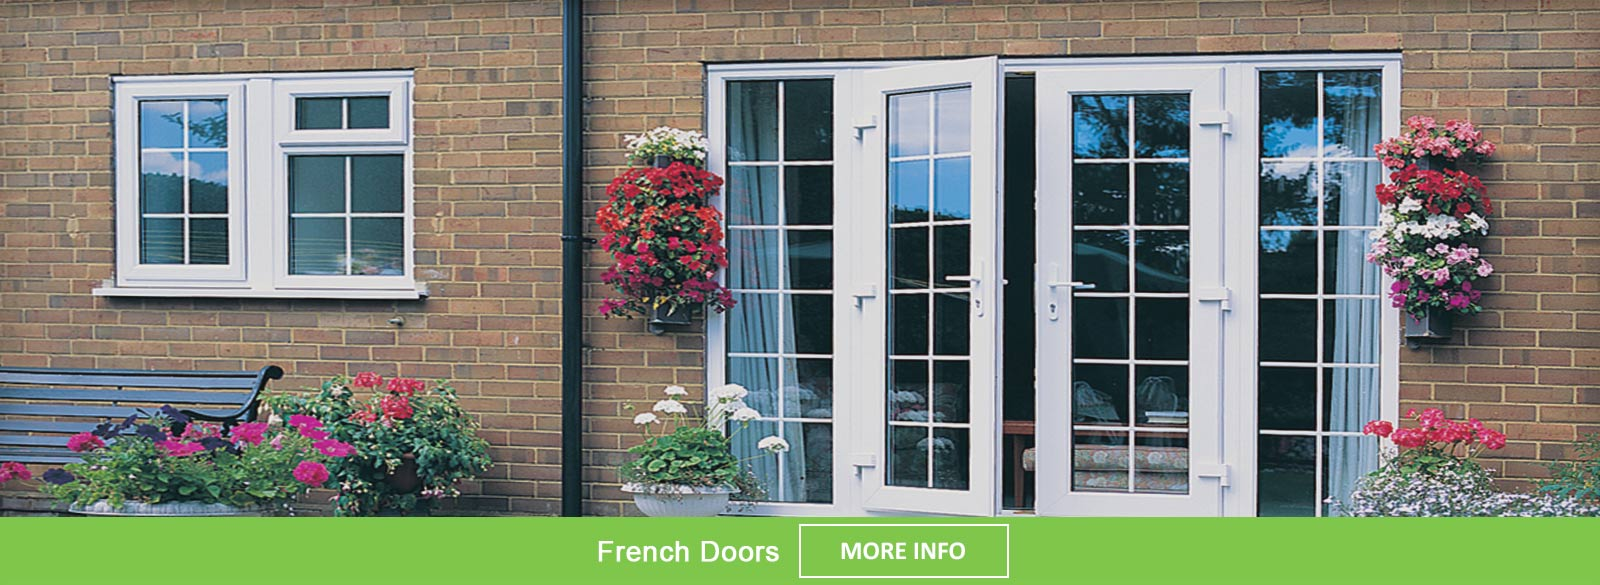 White PVC-u French doors viewed from the garden